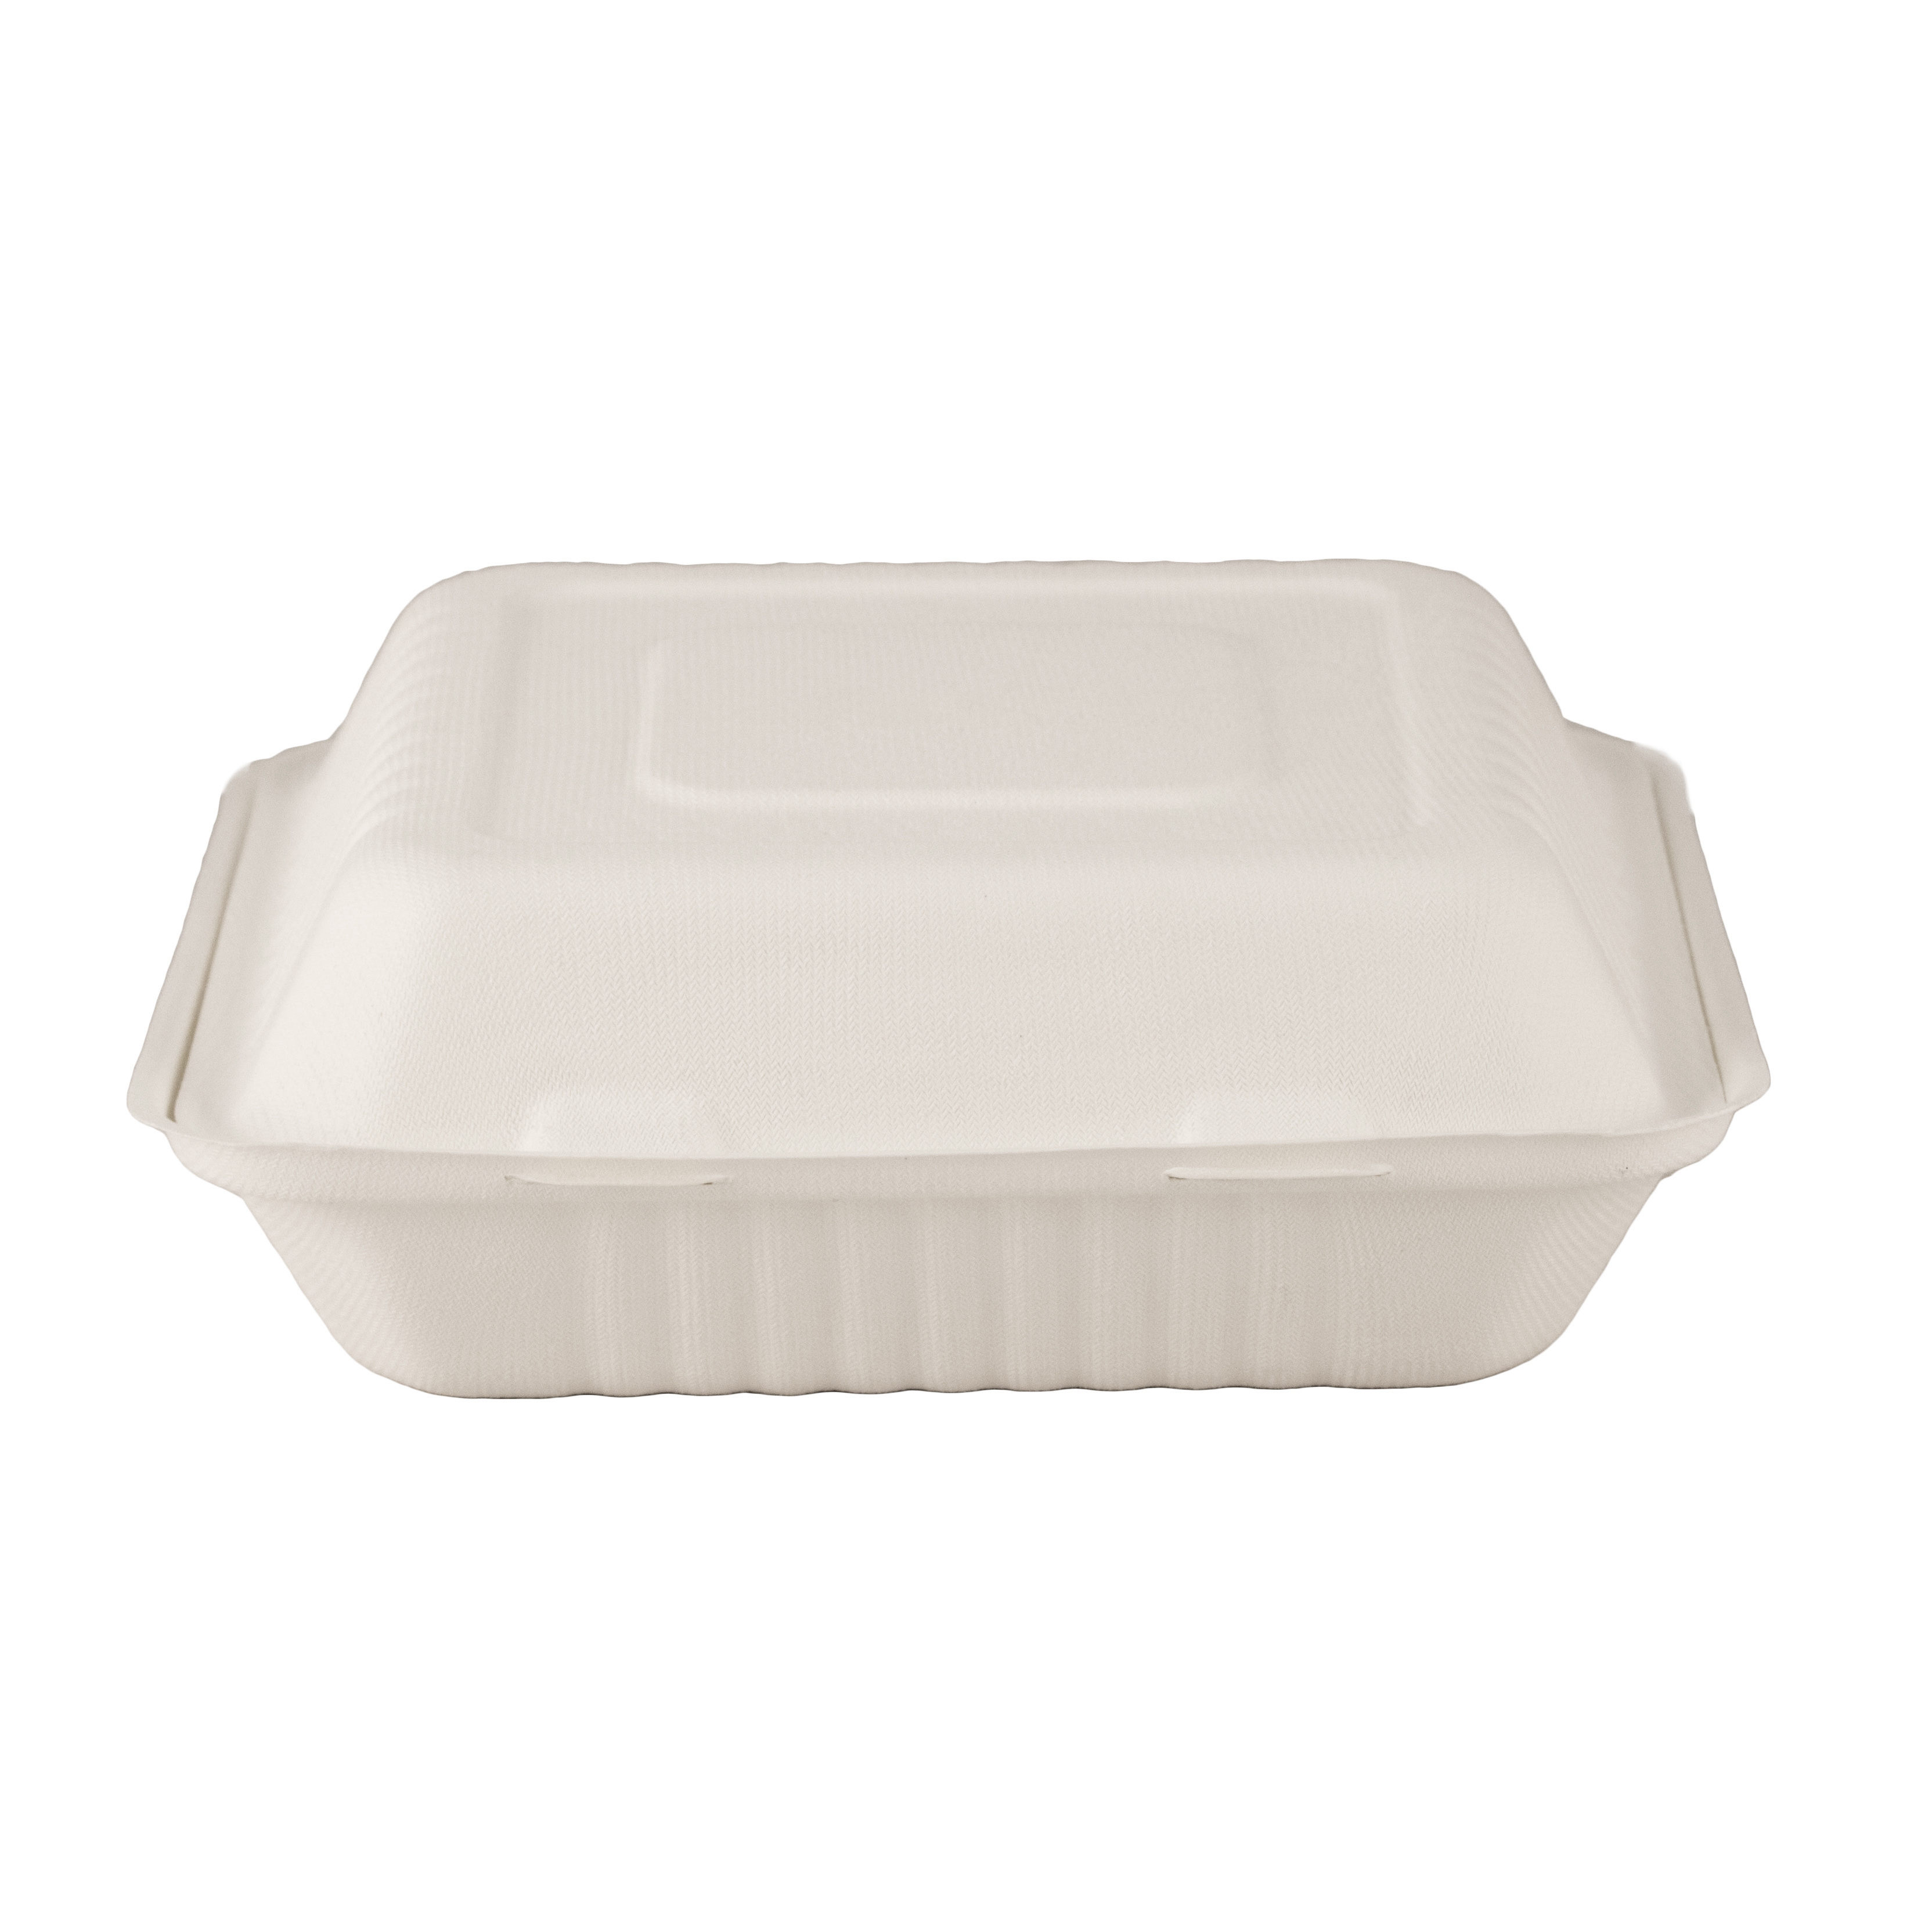 Take-Out Container, 9 x 9, 3-Comp, Sugarcane fiber, Compostable, 200/cs